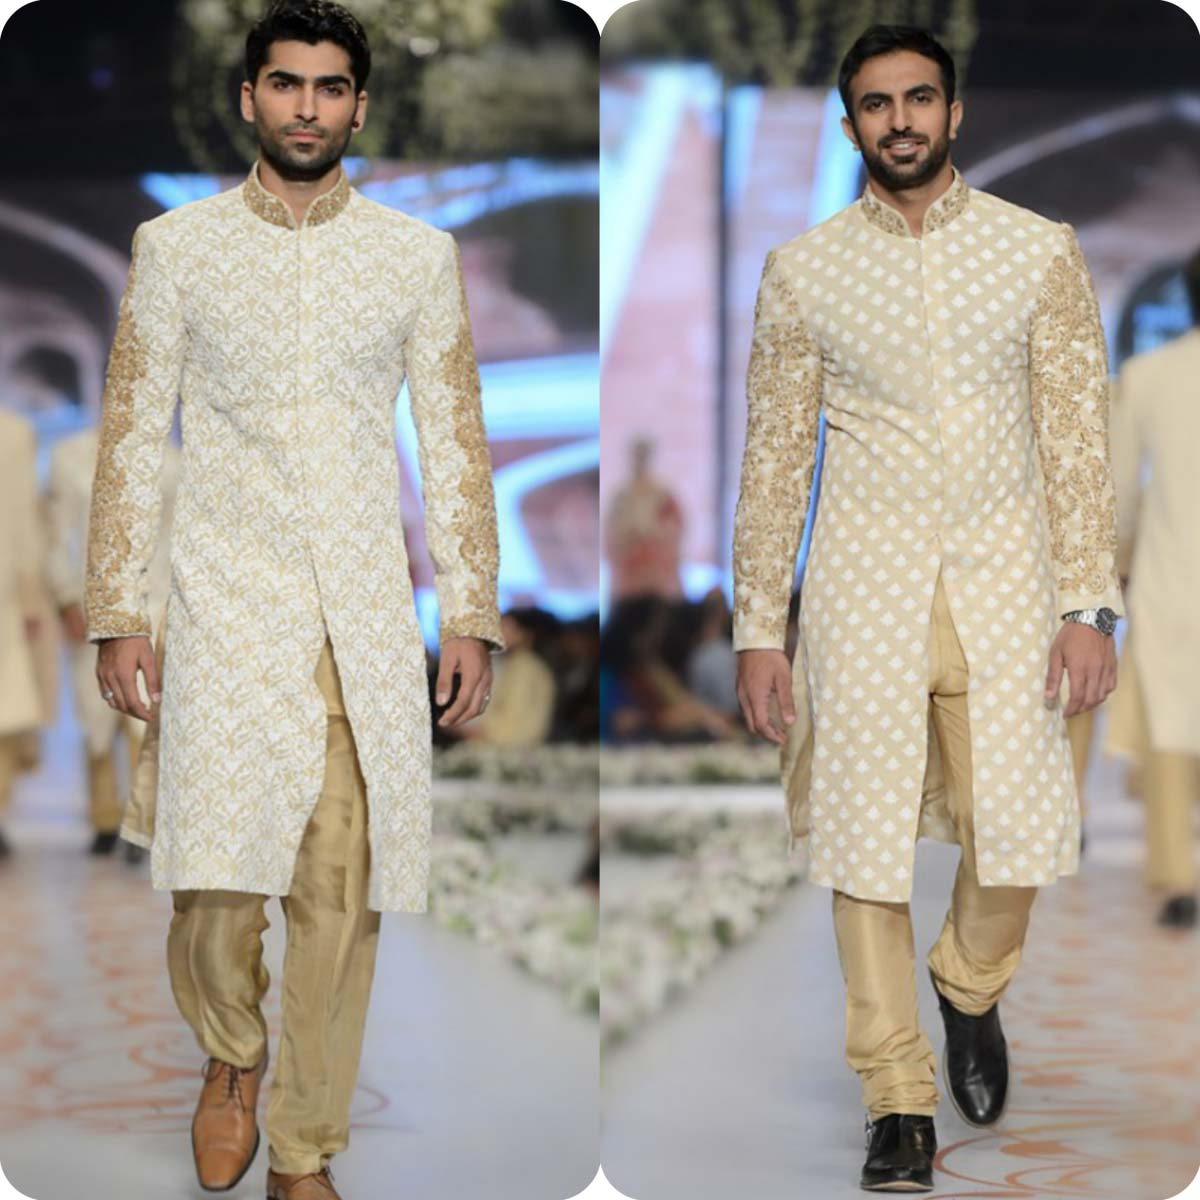 hsyhassan-sheryar-yaseen-wedding-dresses-for-men-2016-3